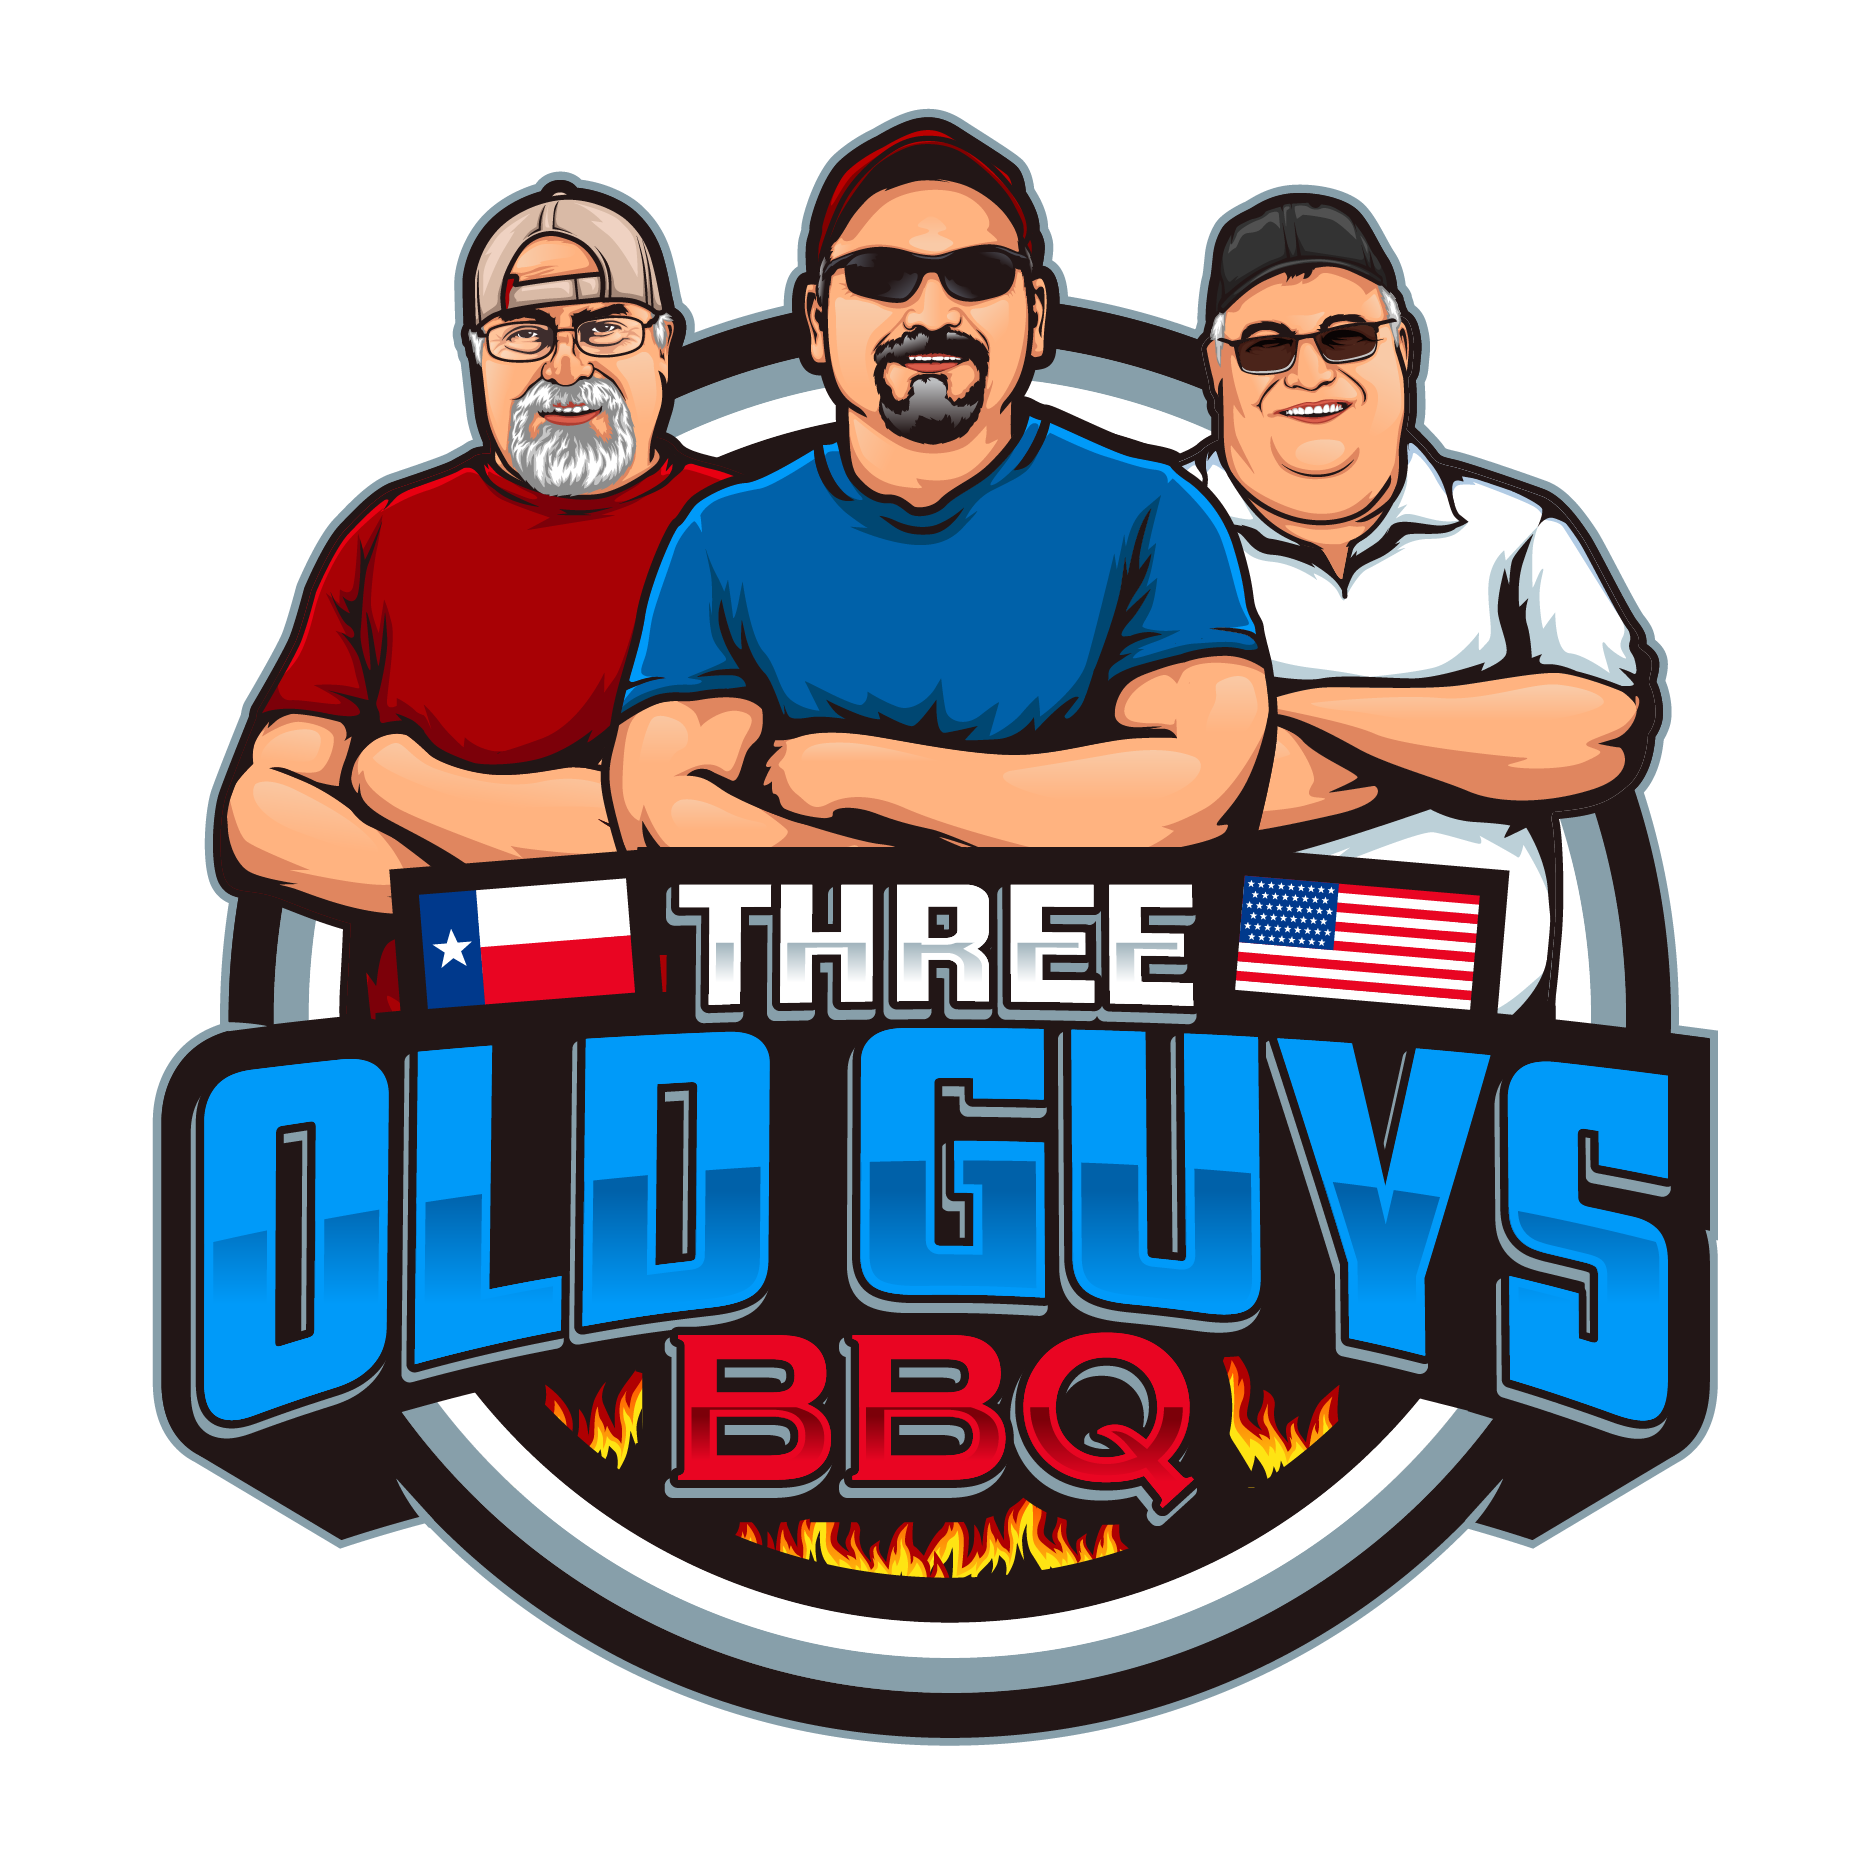 Design a caricature of 3 military vets that like to barbecue. Incorporate American flag please.